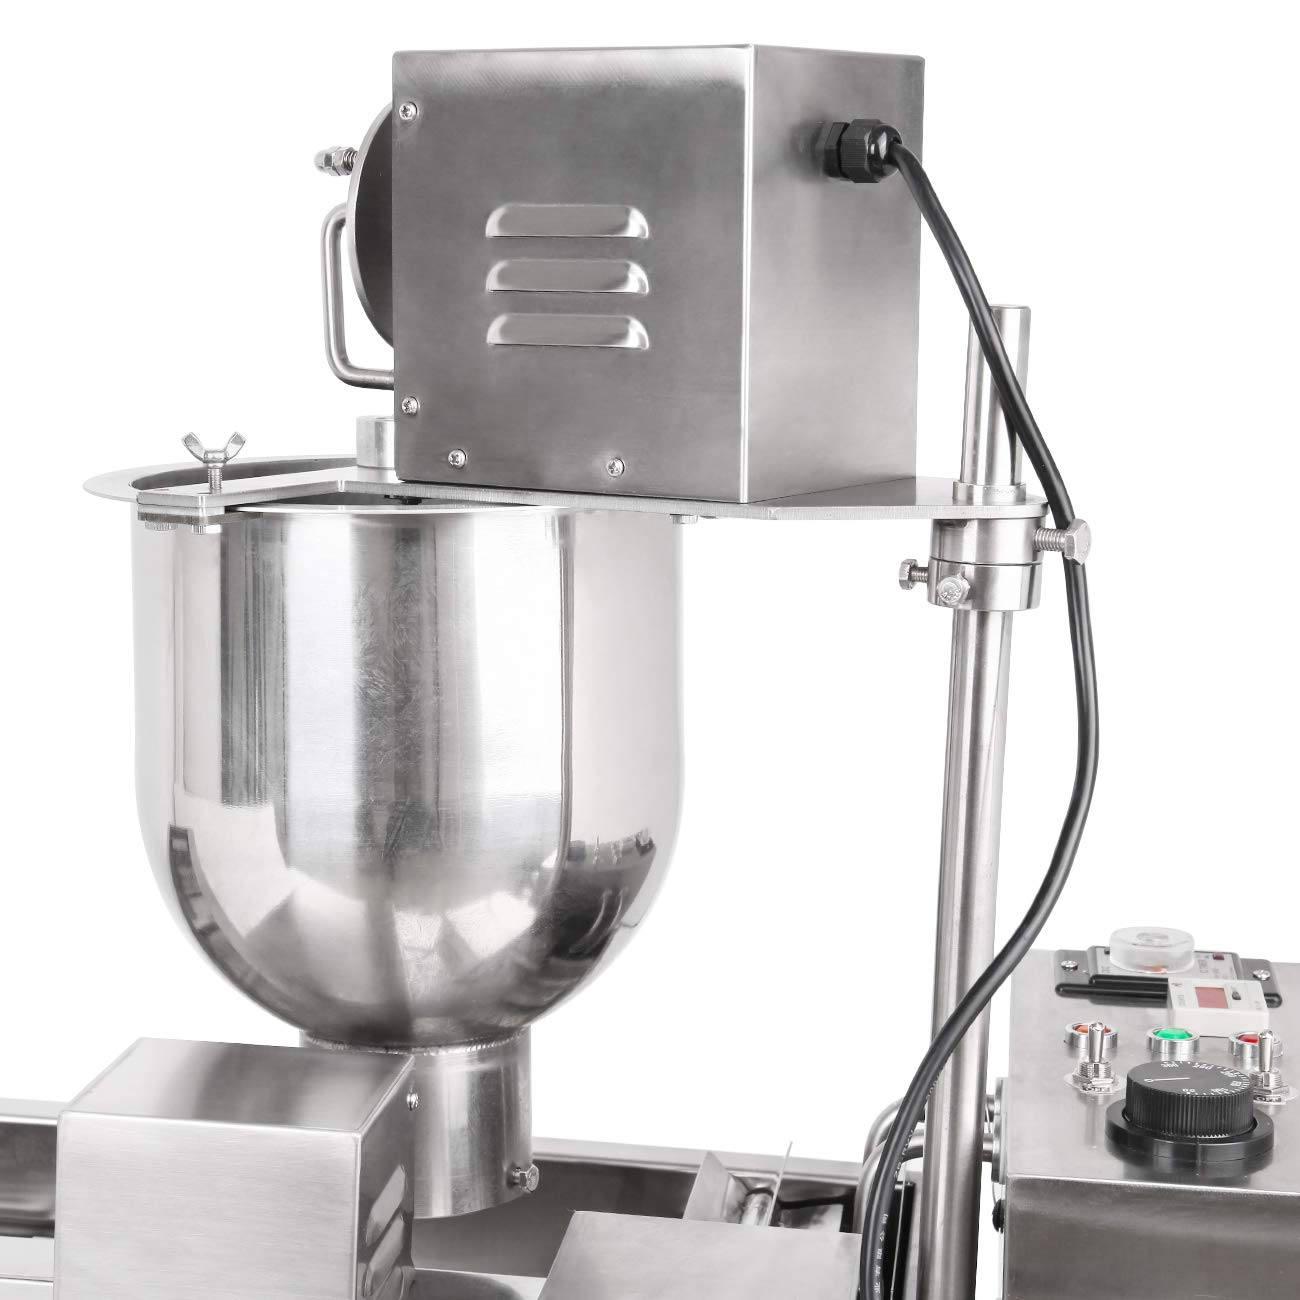 Ridgeyard Commercial Automatic Donut Making Machine Auto Donut Maker Machine with 3 Sizes Molds and 7L Bucket 110V 3000W, Ship From US by Ridgeyard (Image #9)